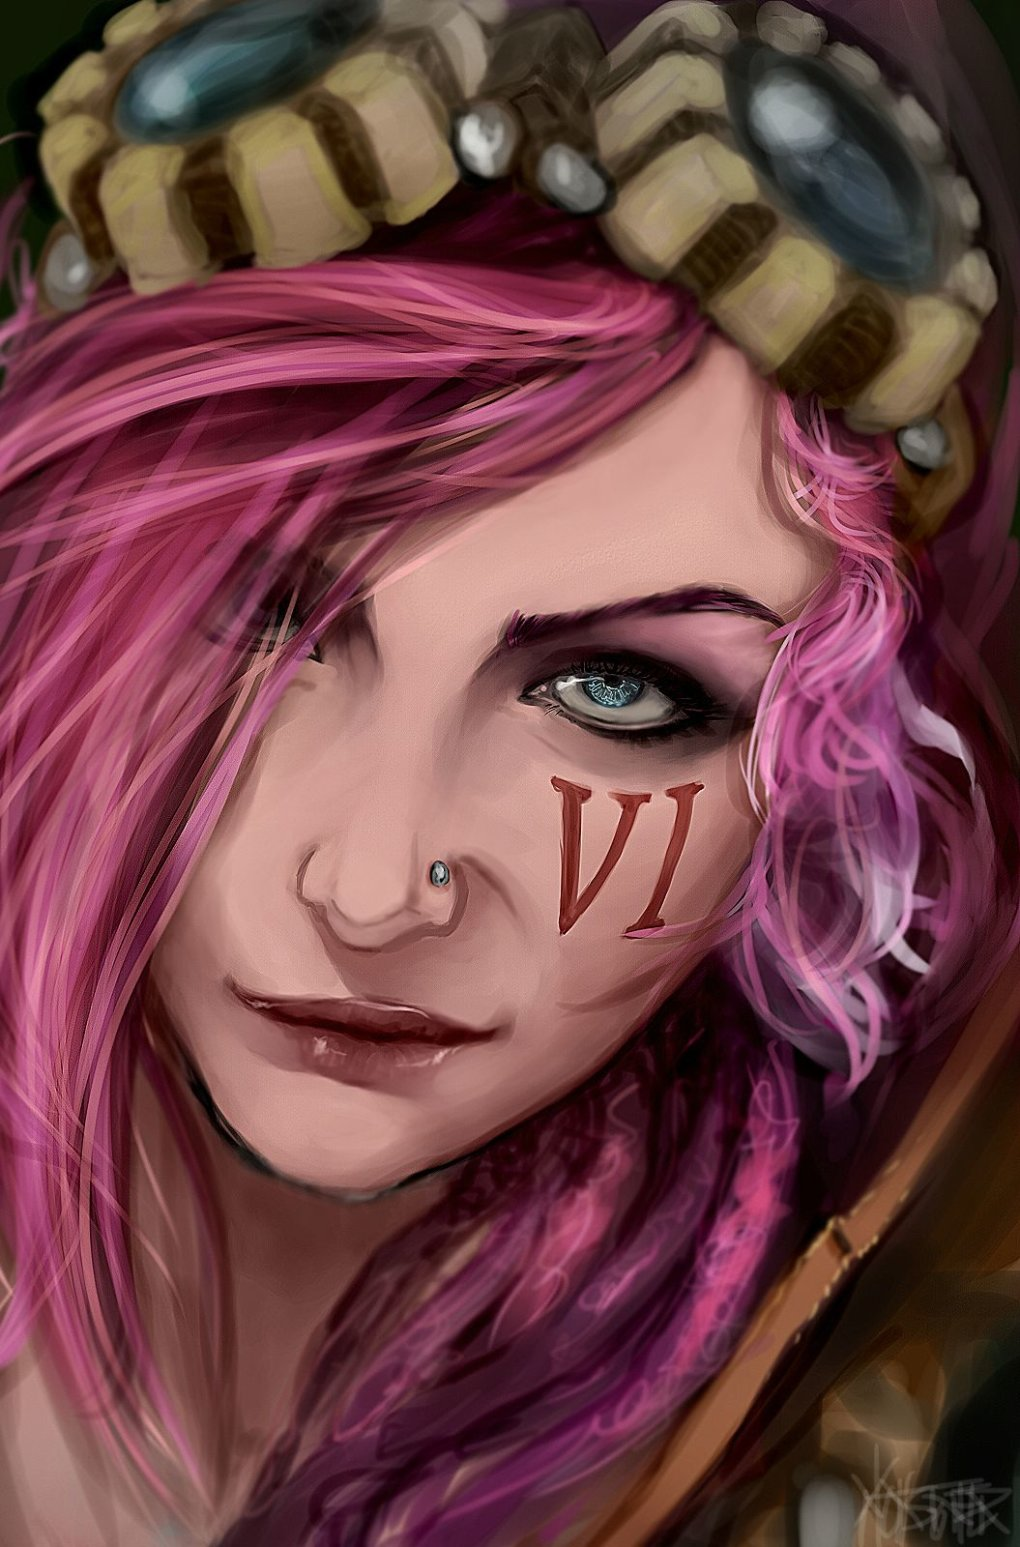 original vi - the fans art of league of legends